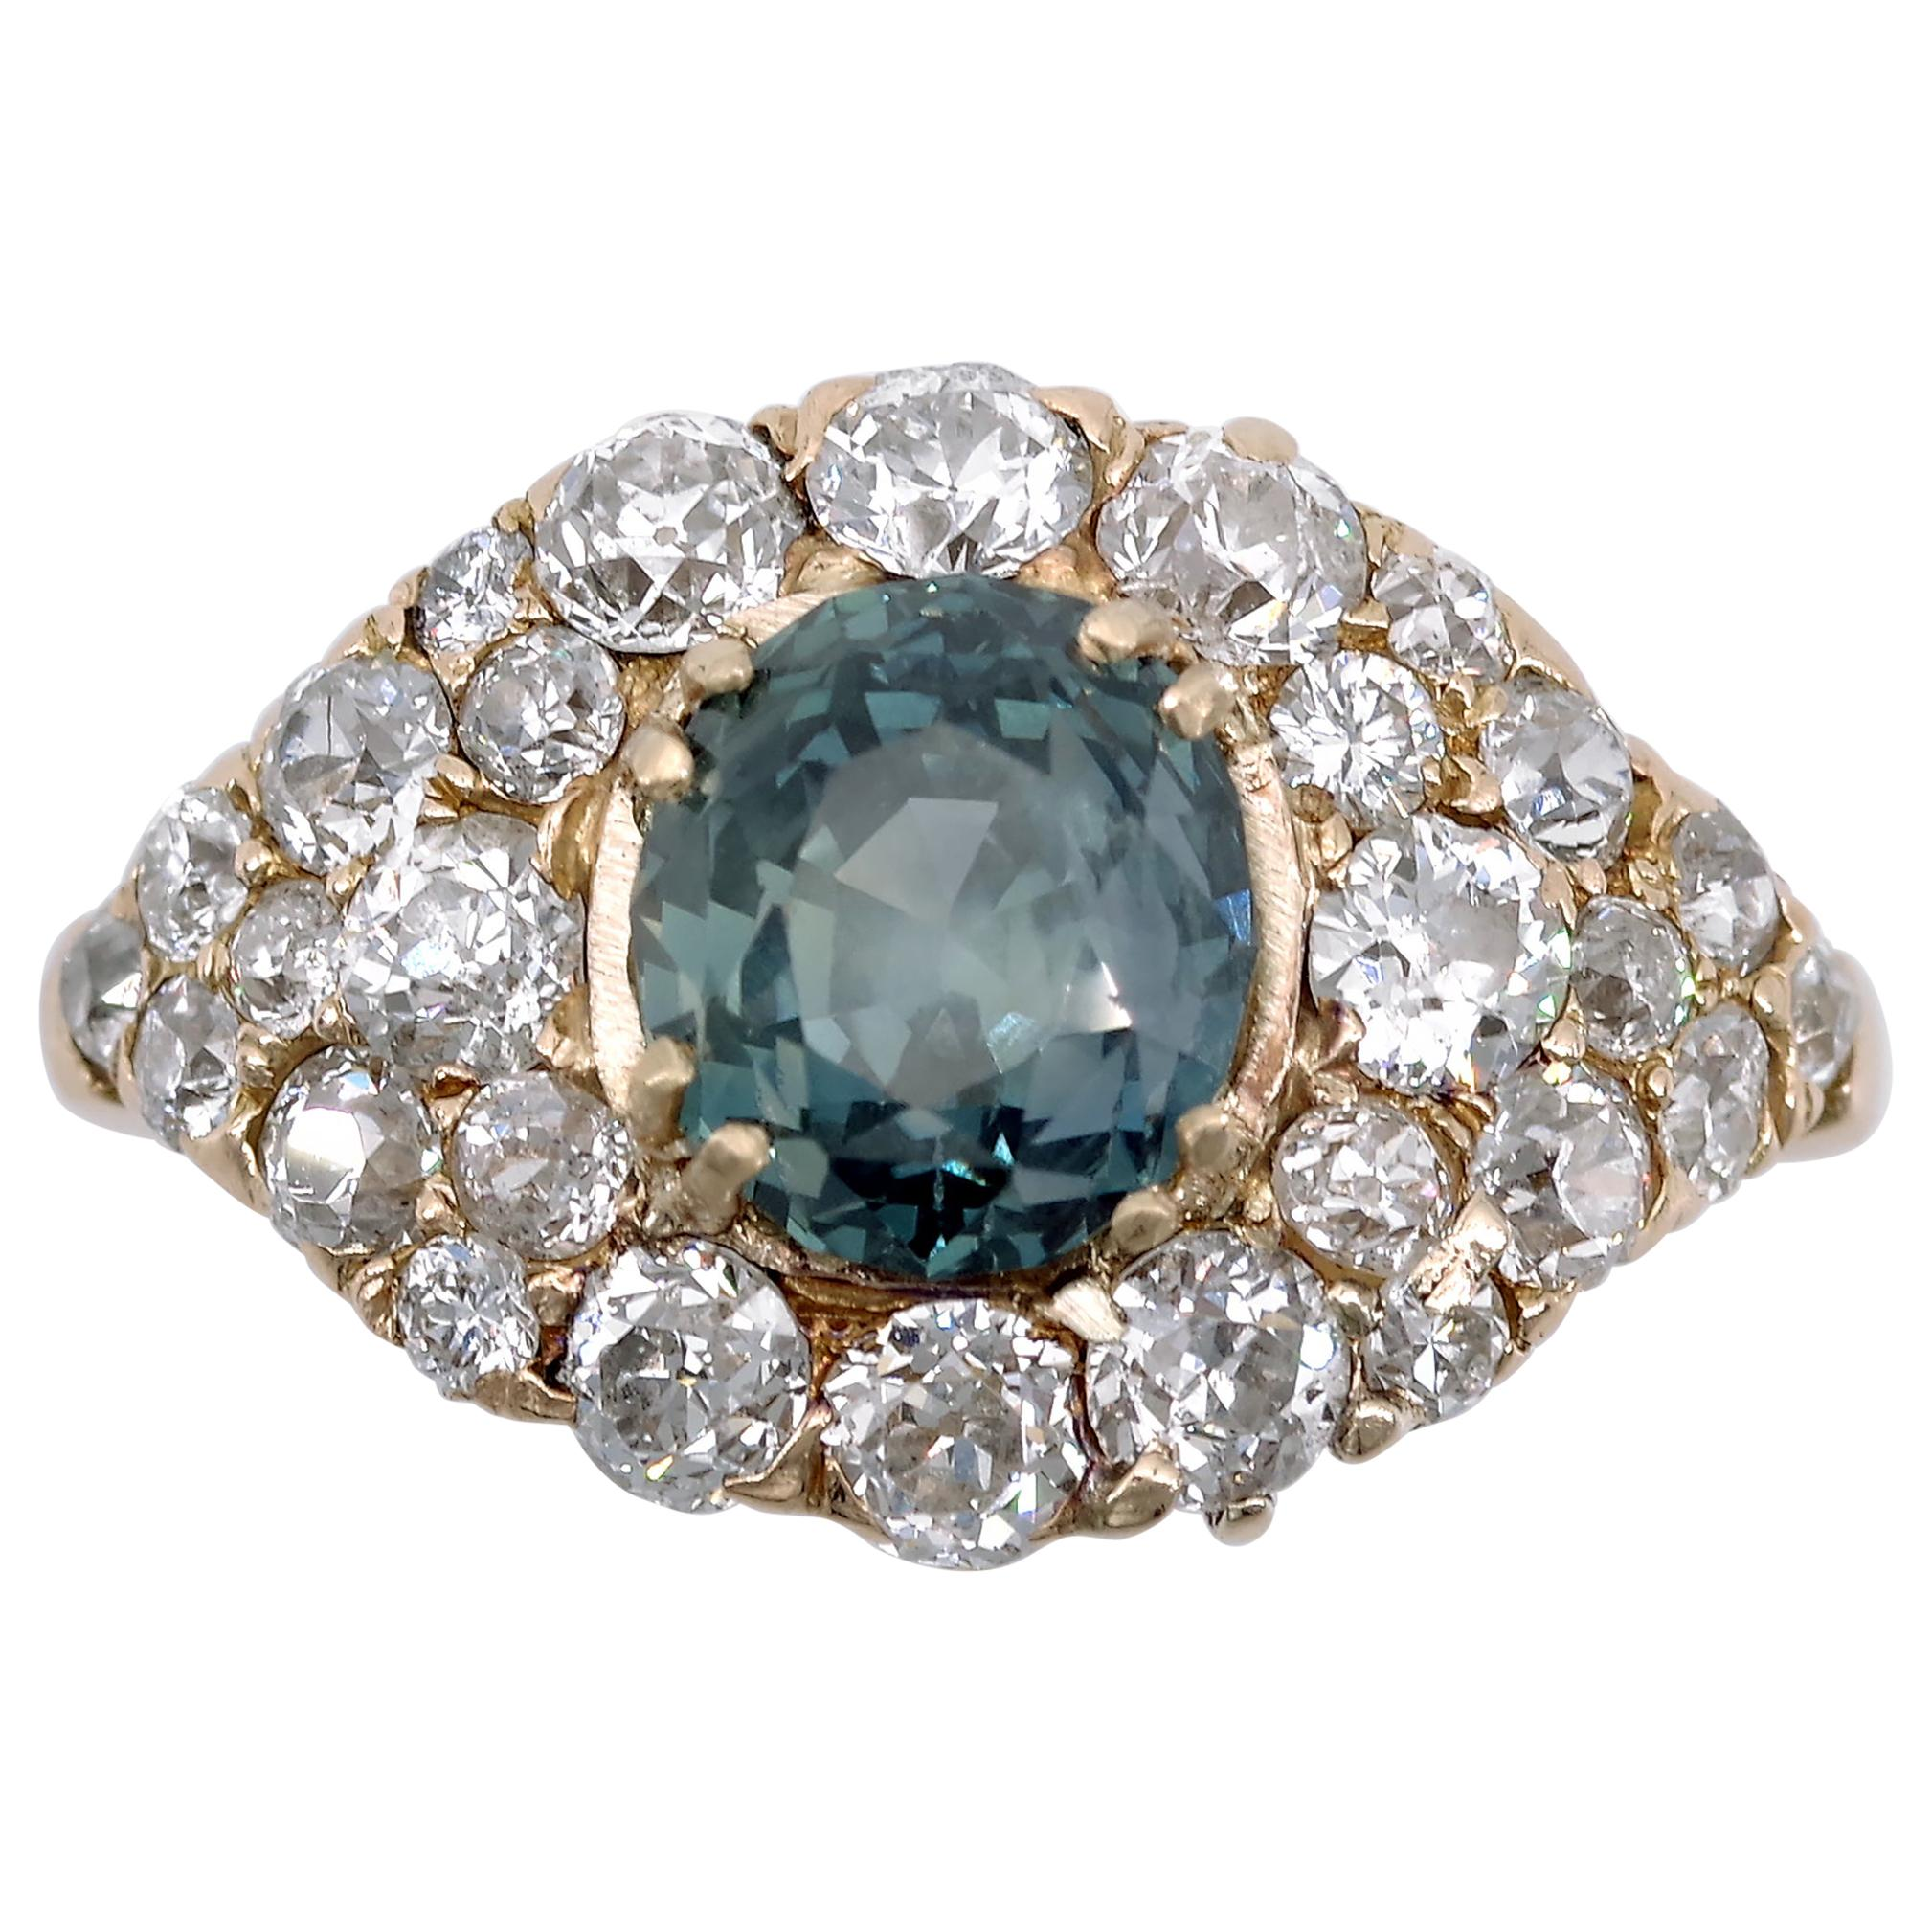 035e91a05b690 Antique and Vintage Rings and Diamond Rings For Sale at 1stdibs